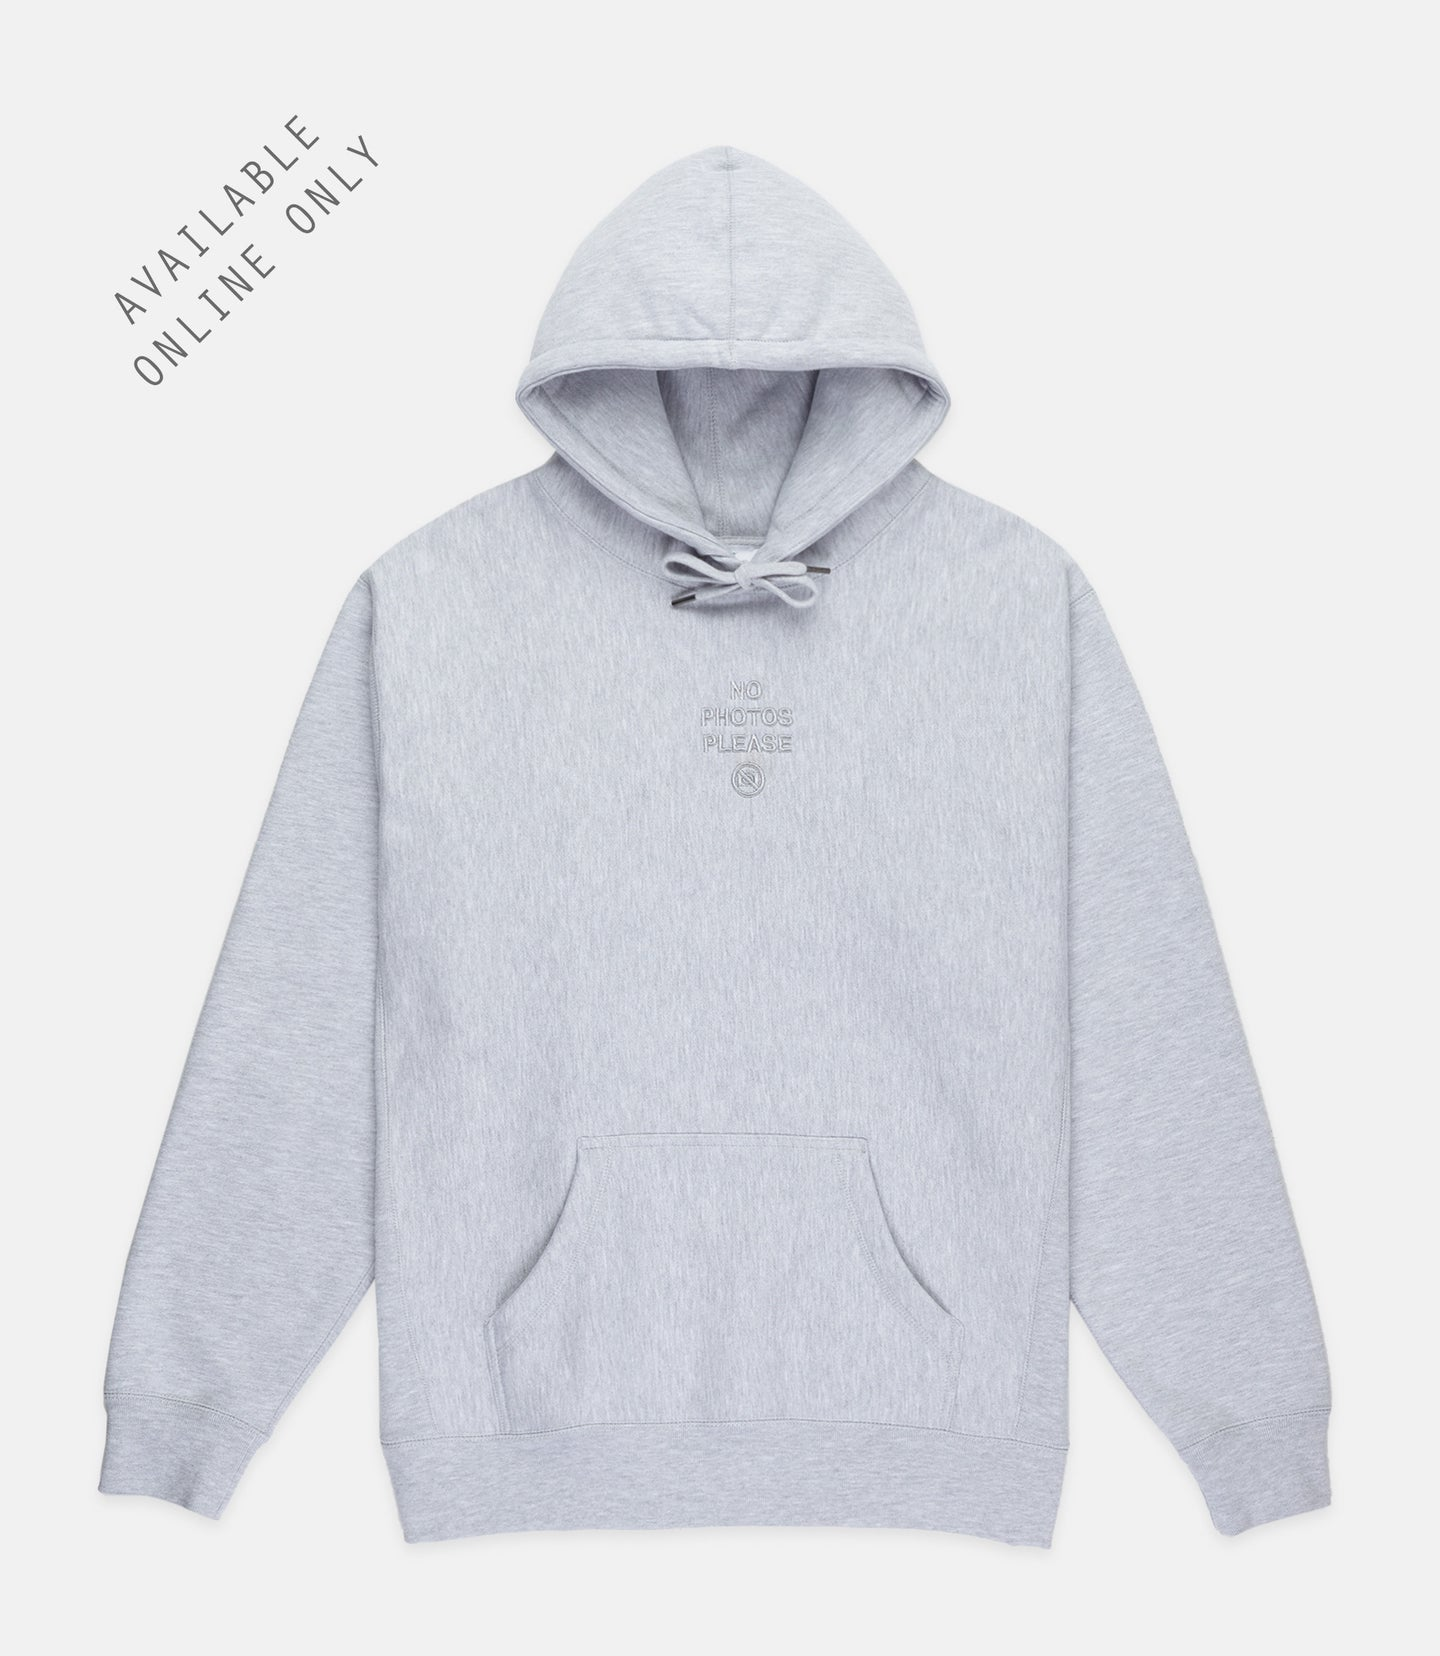 NO PHOTOS HOODIE - HEATHER GREY